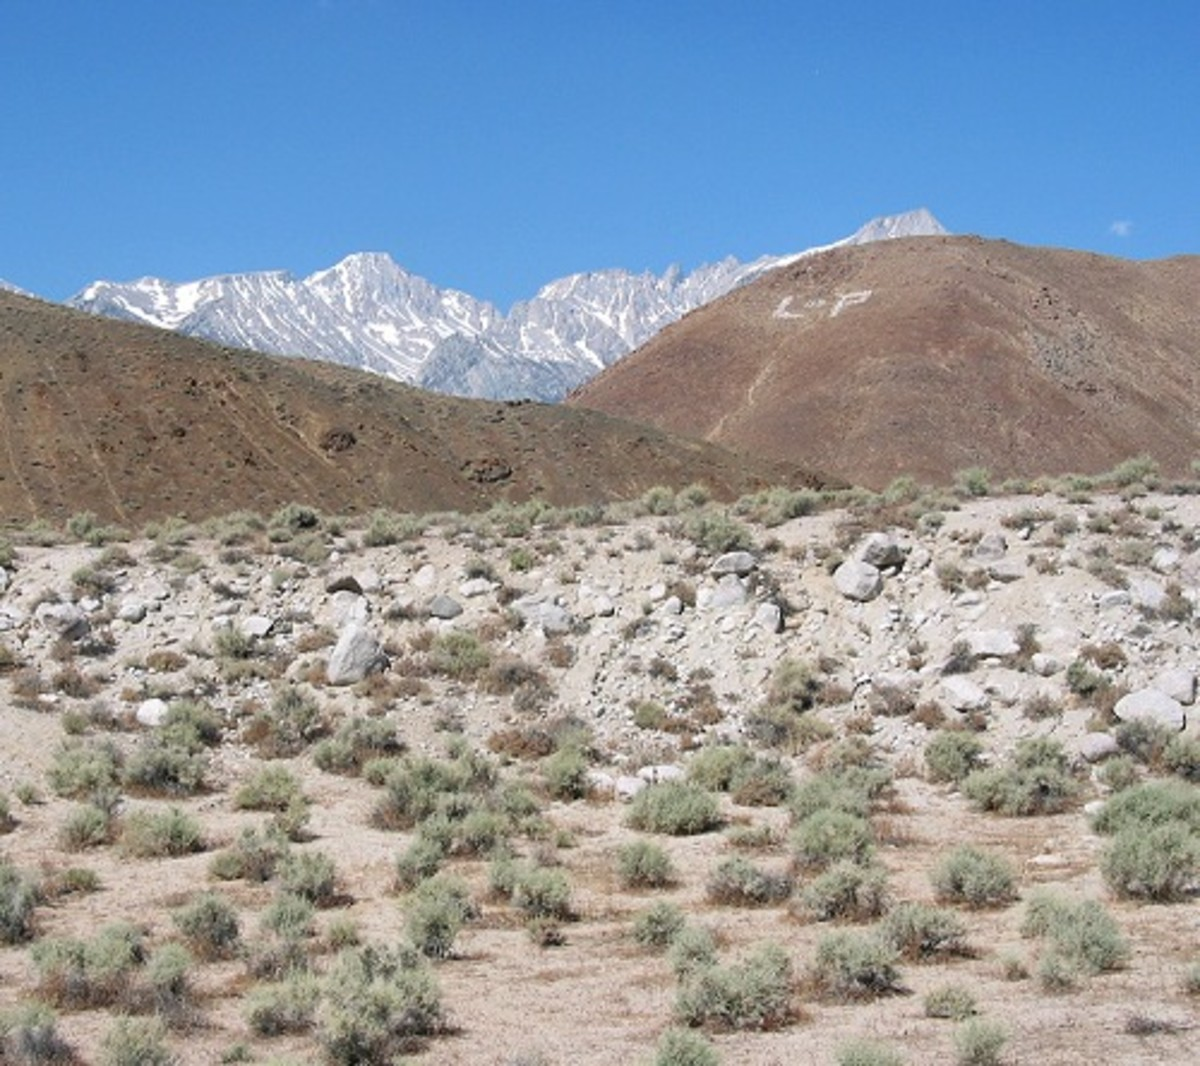 This fault scarp formed in the 1872 Owens Valley earthquake- Photo courtesy Ron Schott of Flickr under Creative Commons license